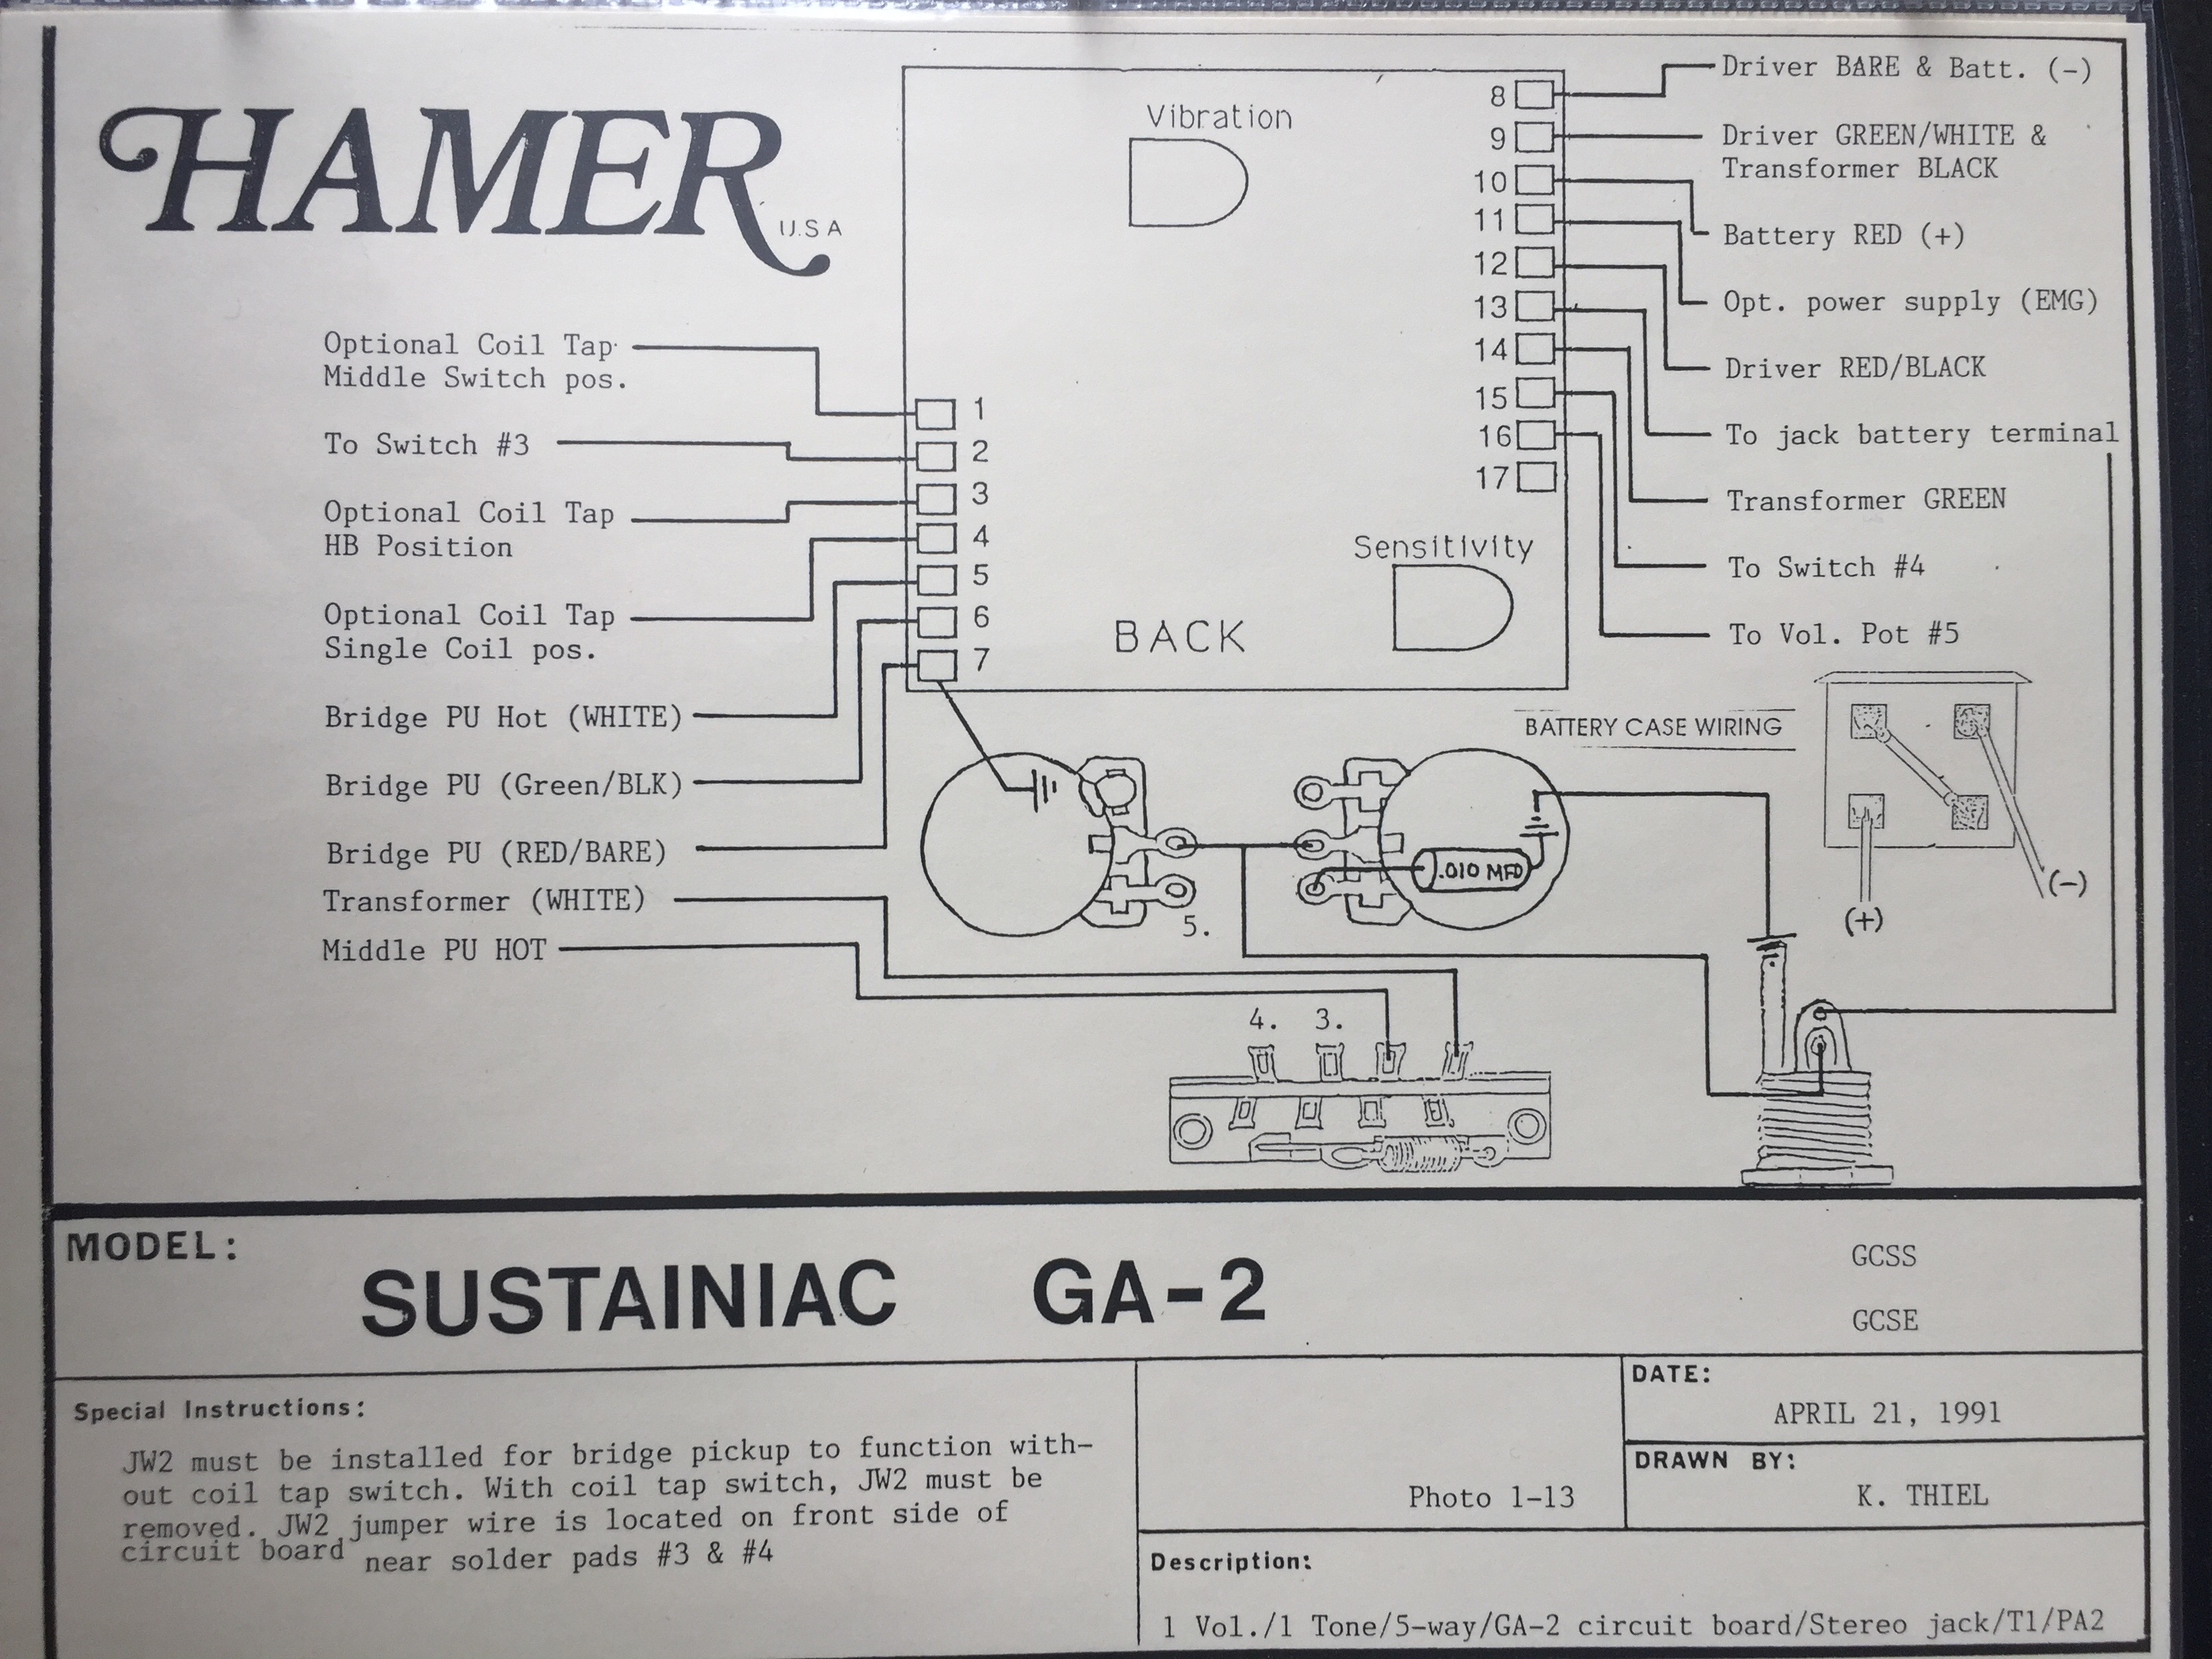 hamer chaparral wiring diagram hamer fan club hamer steve stevens wiring diagram hamer guitar wiring diagram